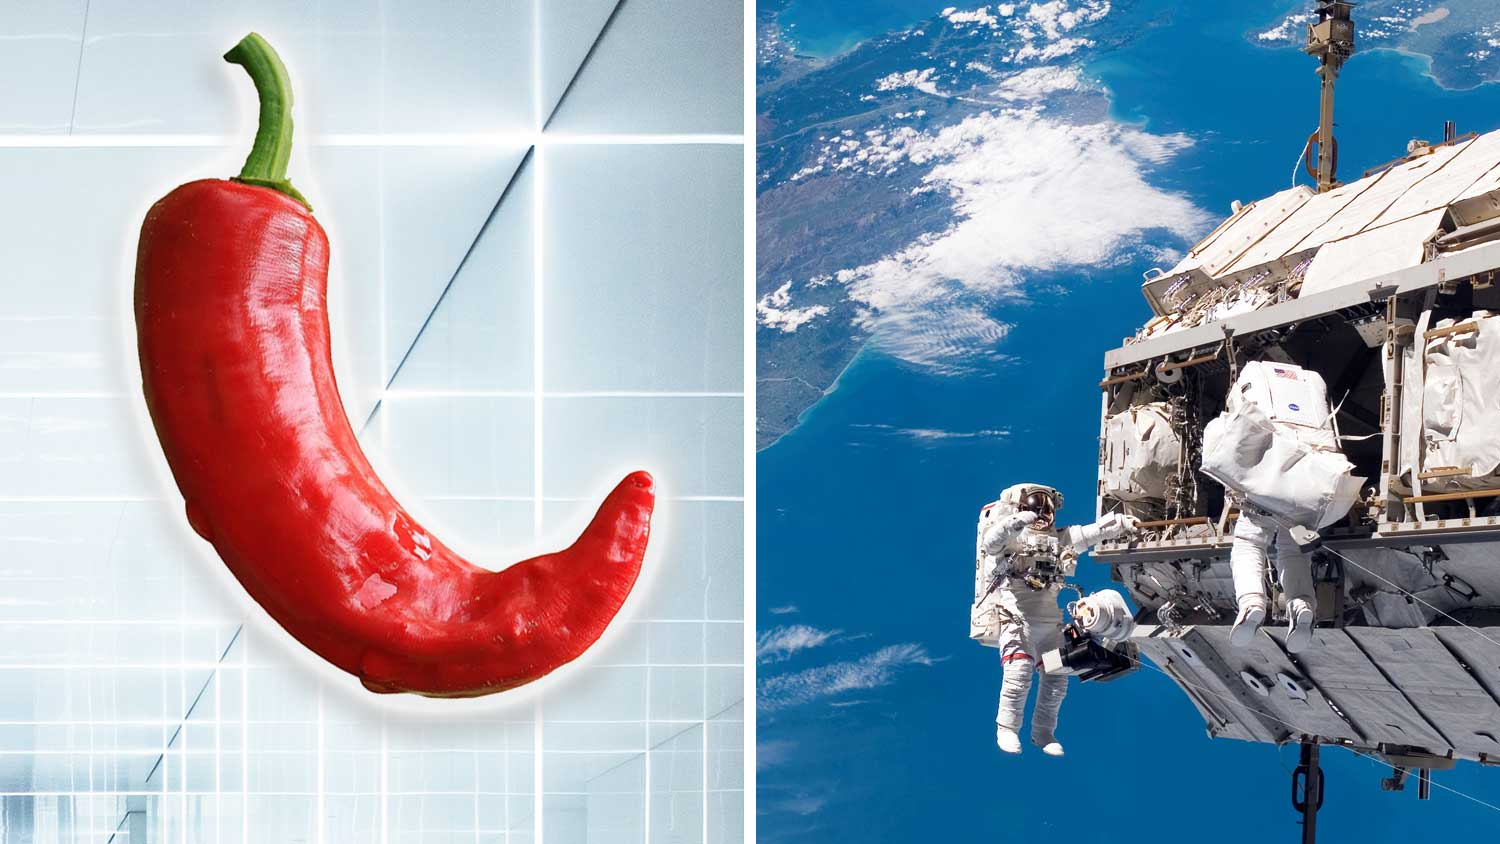 NASA Is Growing Chili Peppers In the Space Station